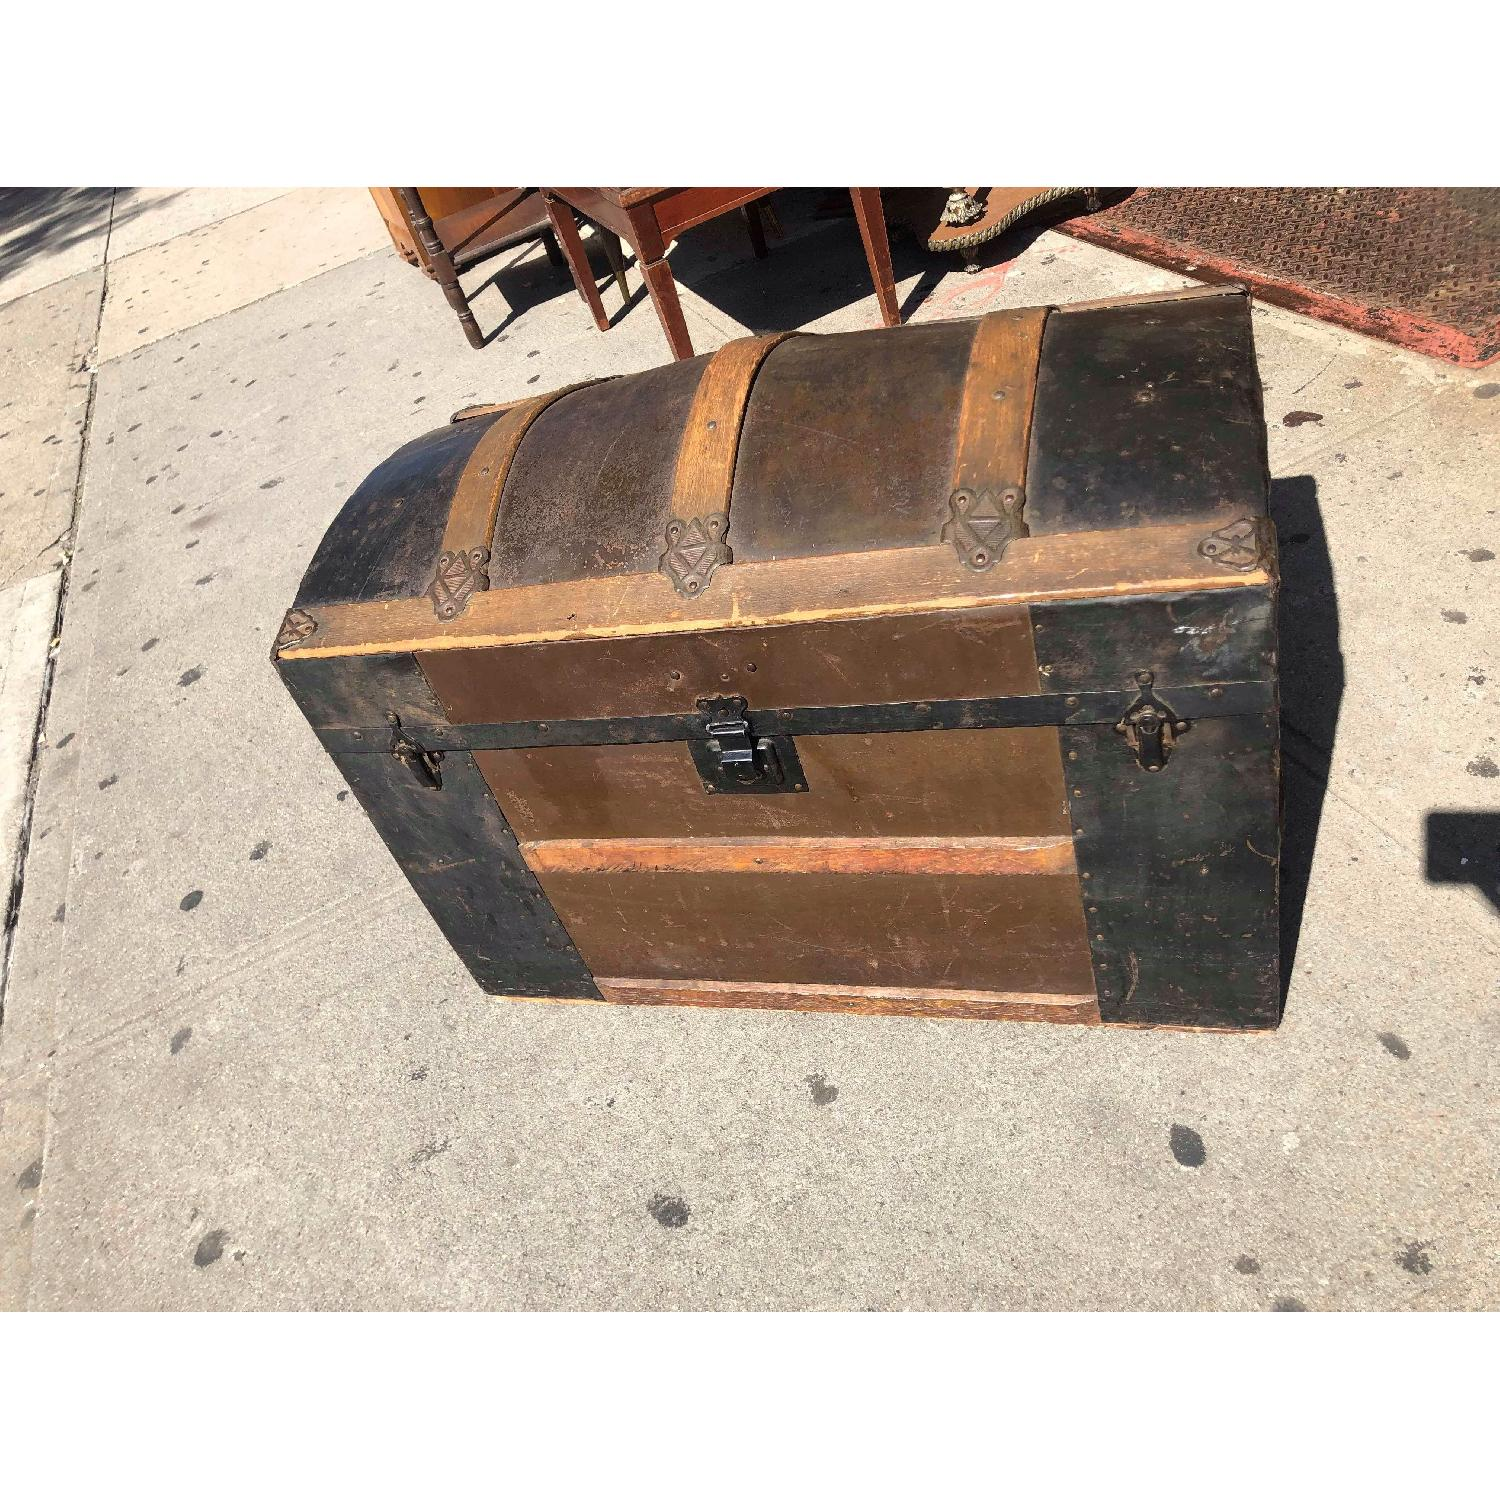 Antique 19th Century Dome Top Storage Trunk w/ Wheels - image-1